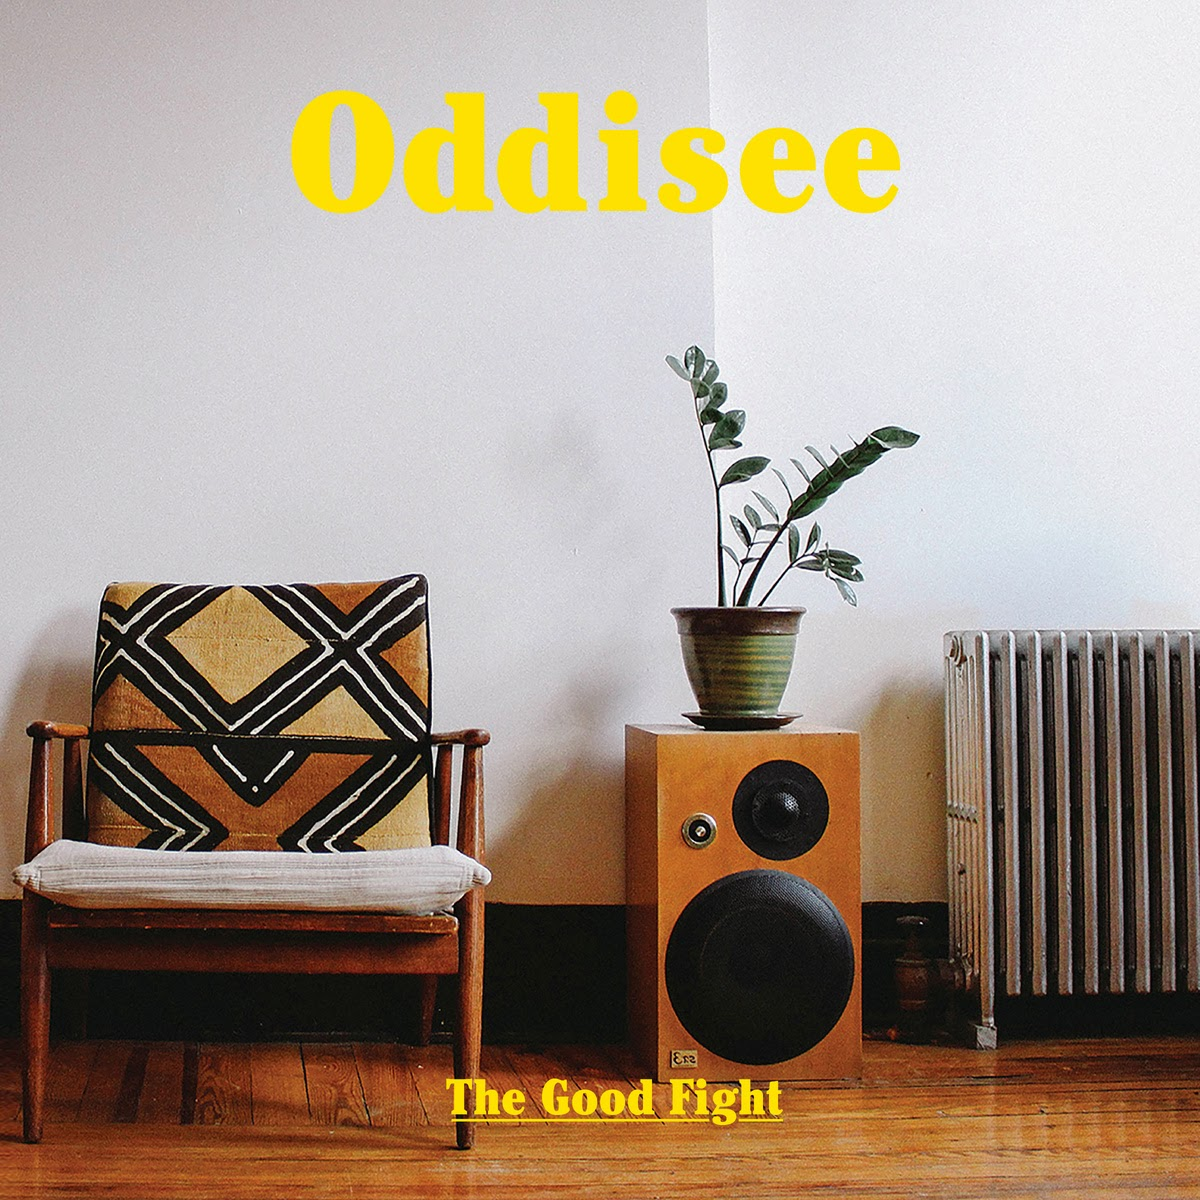 """Oddisee - """"The Good Fight"""" (2015)"""